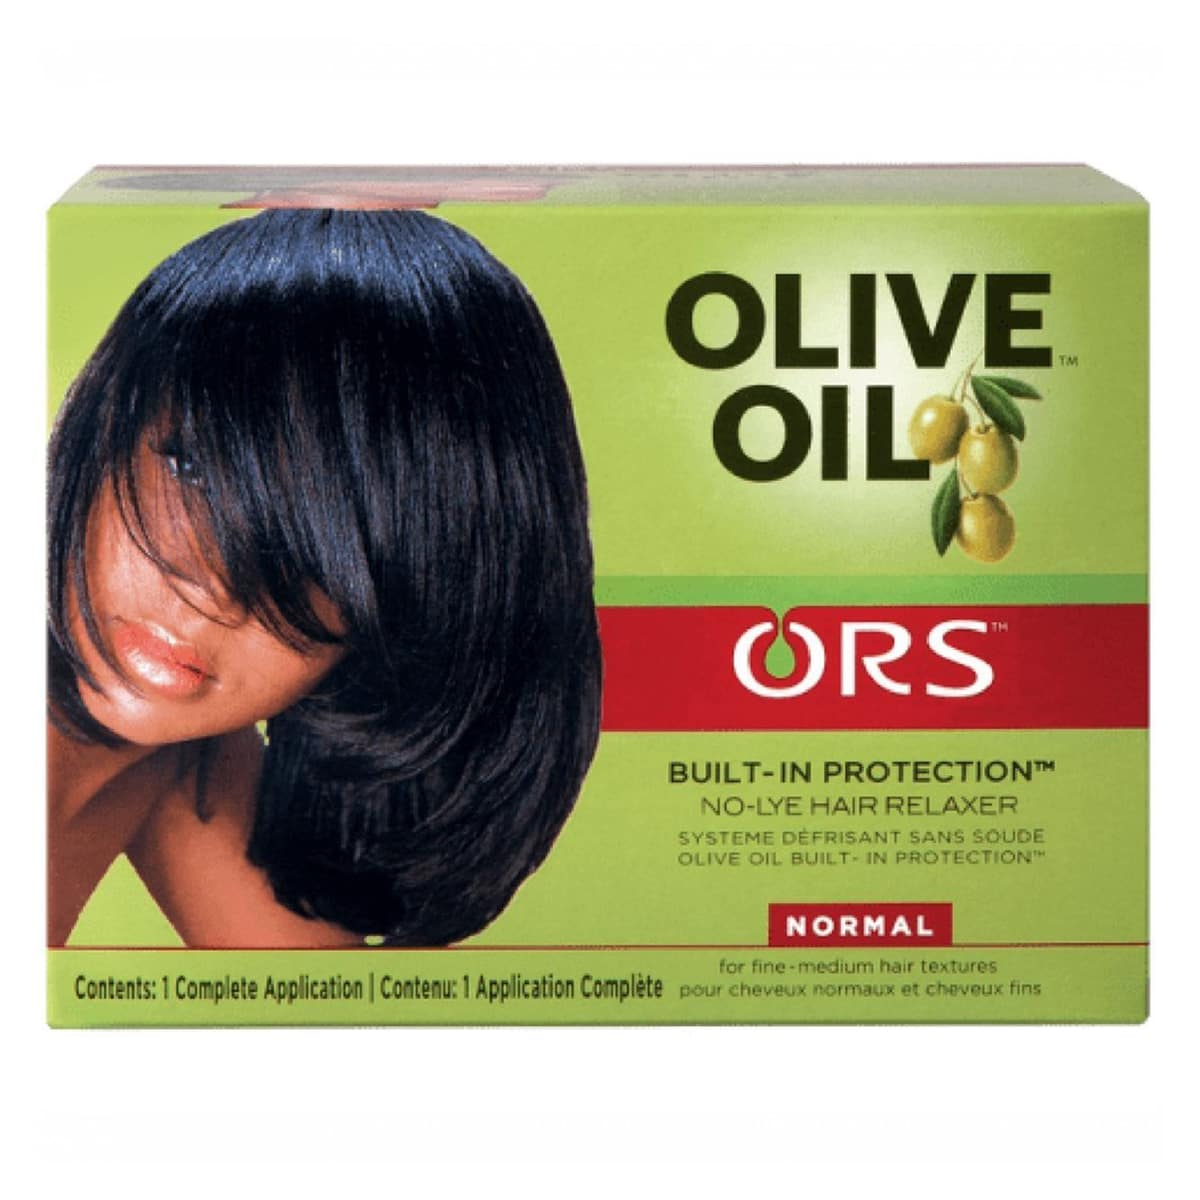 Buy Organic Root Stimulator (ORS) Olive Oil No-lye Hair Relaxer System Kit (Normal)